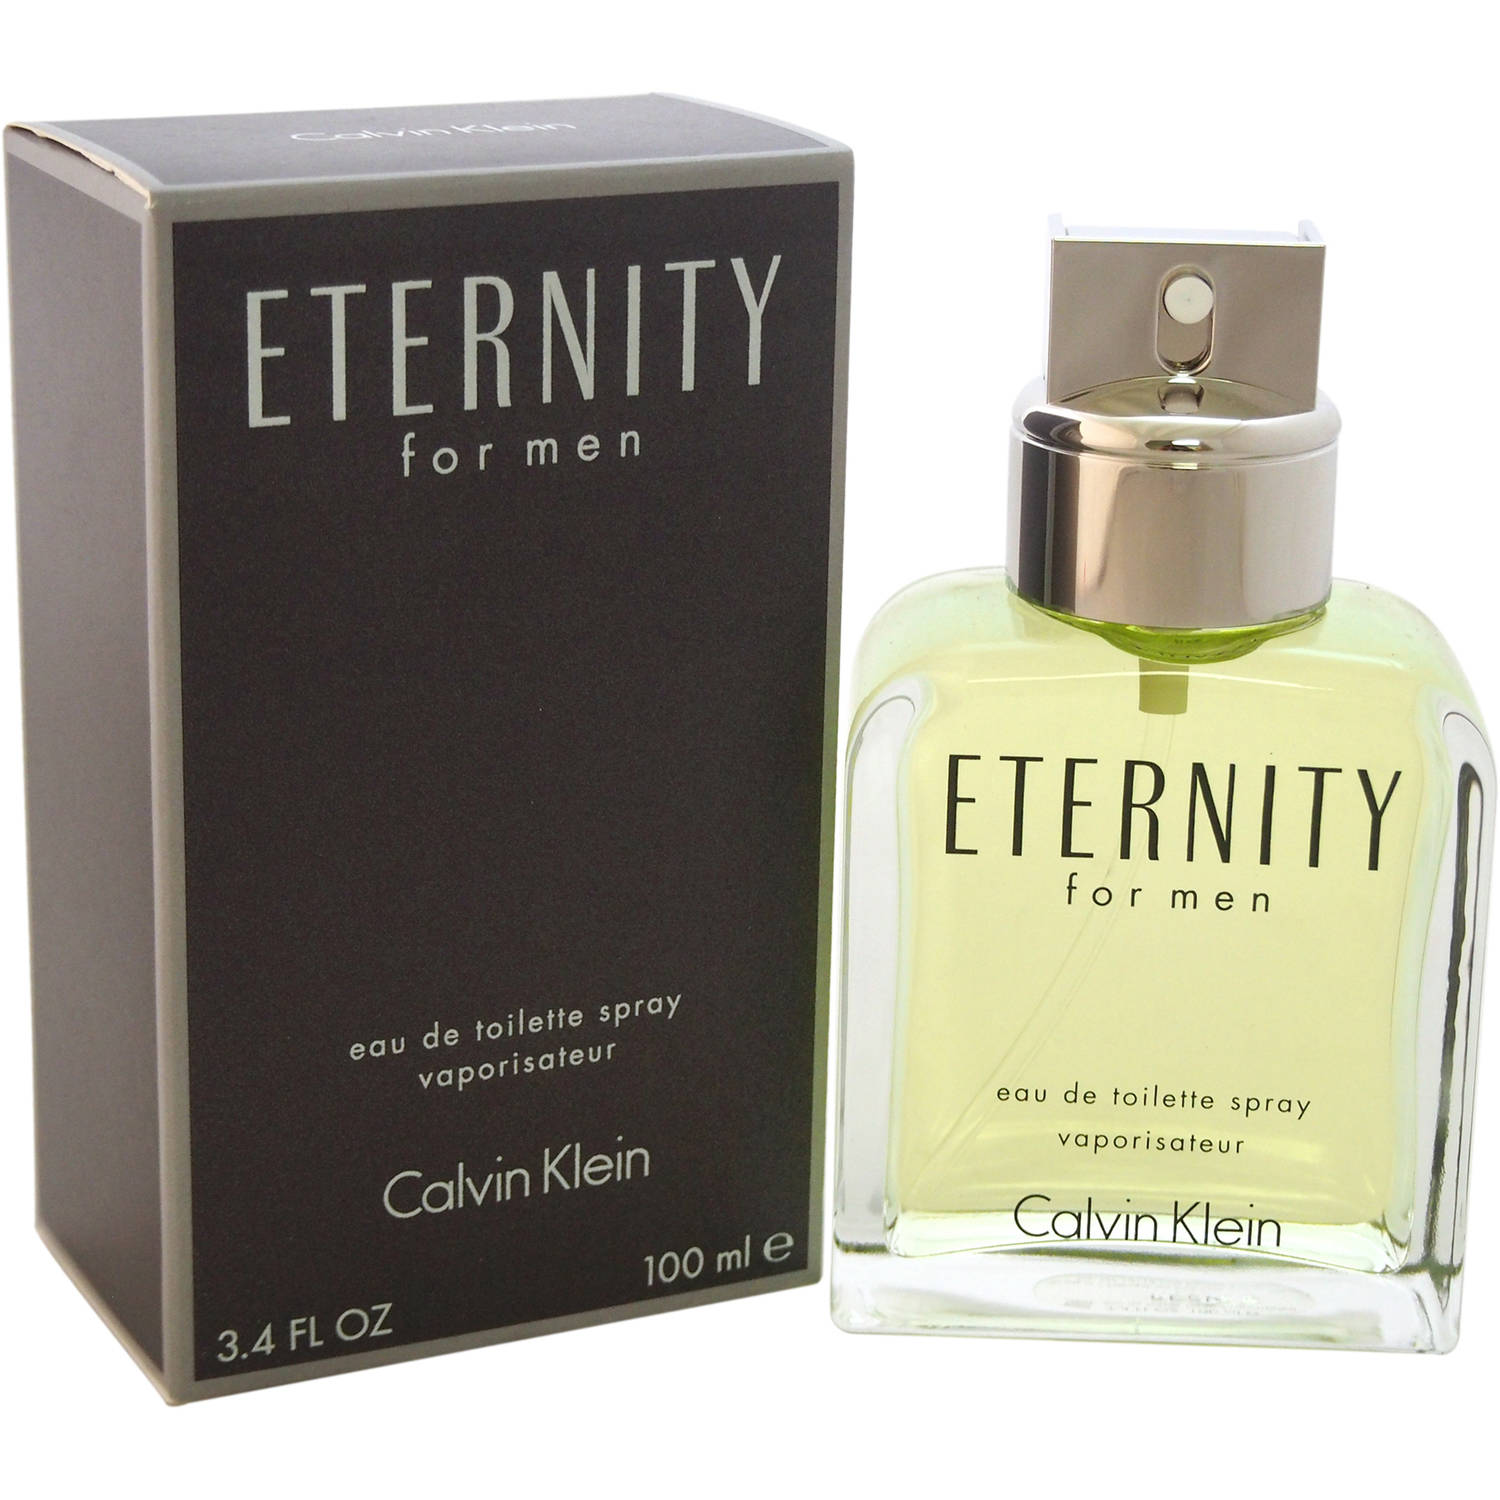 Calvin Klein Eternity for Men Eau de Toilette Spray, 3.4 fl oz